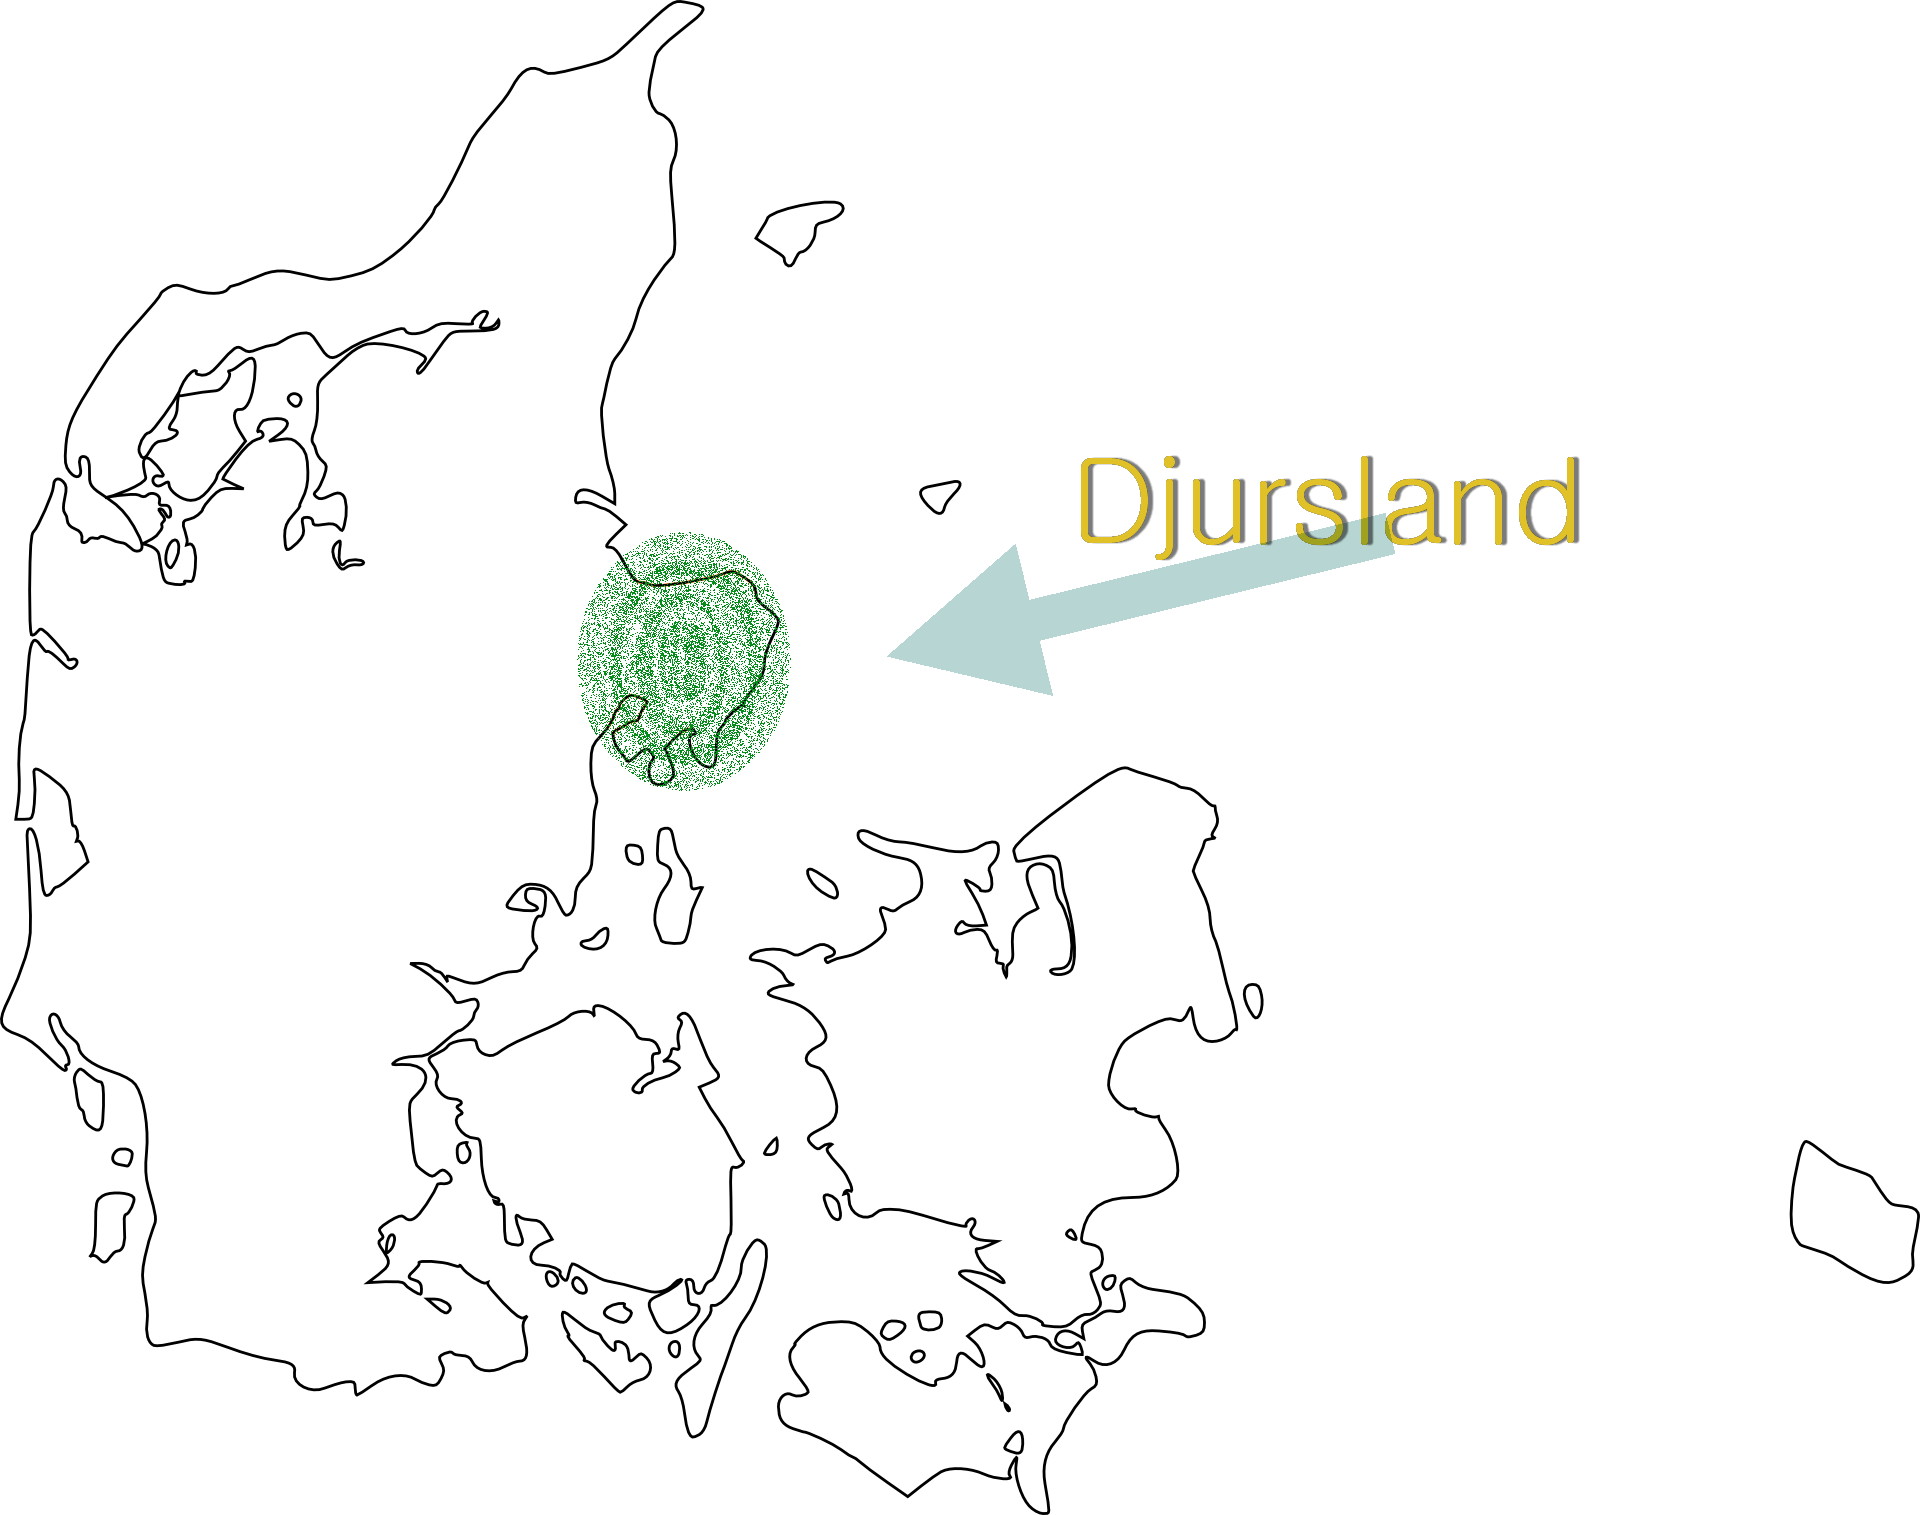 map of Denmark - Djursland highlighted